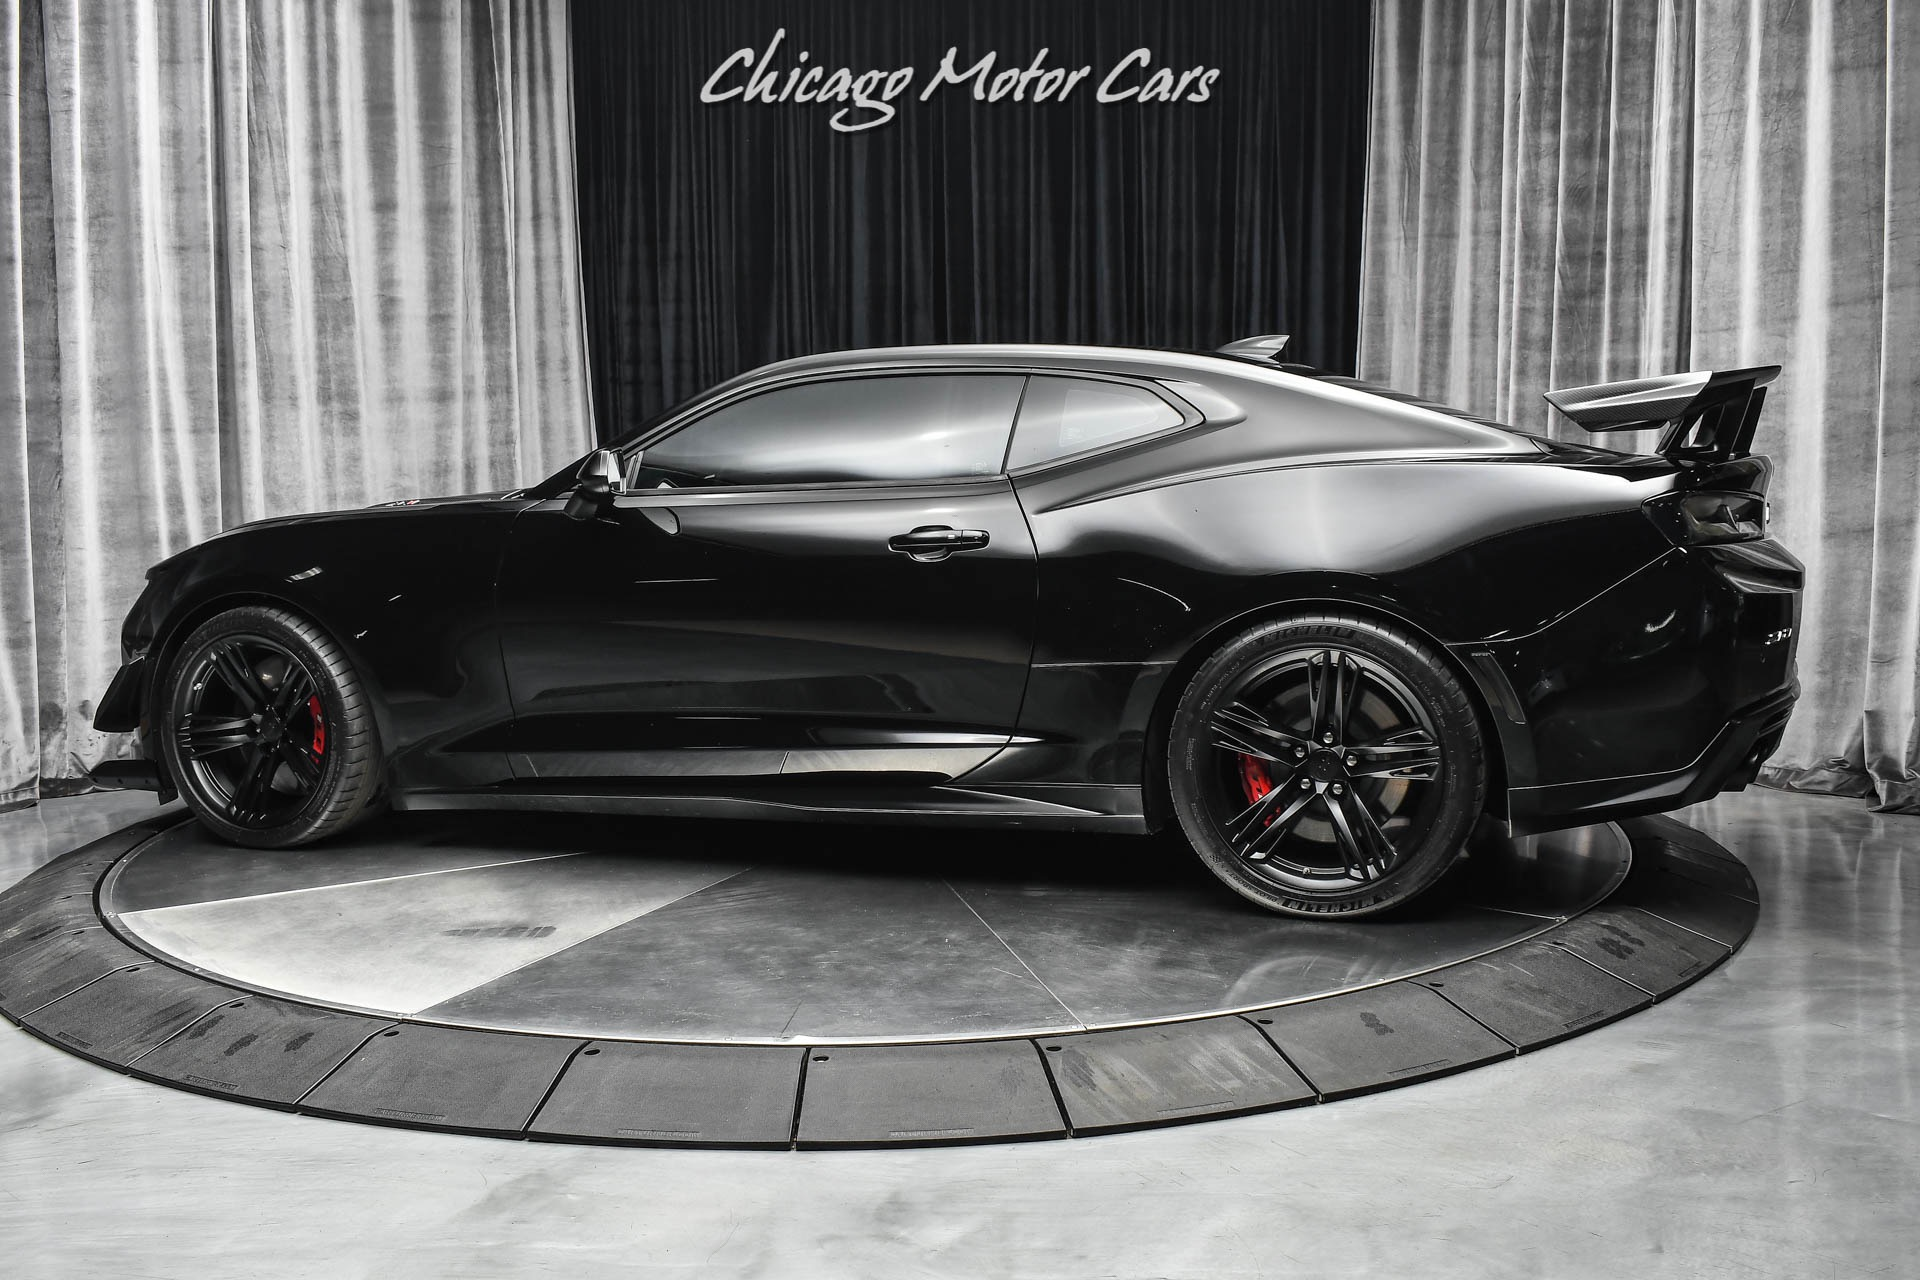 Used-2018-Chevrolet-Camaro-ZL1-1LE-Coupe-LOADED-WITH-PERFORMANCE-UPGRADES-927HP--735TQ